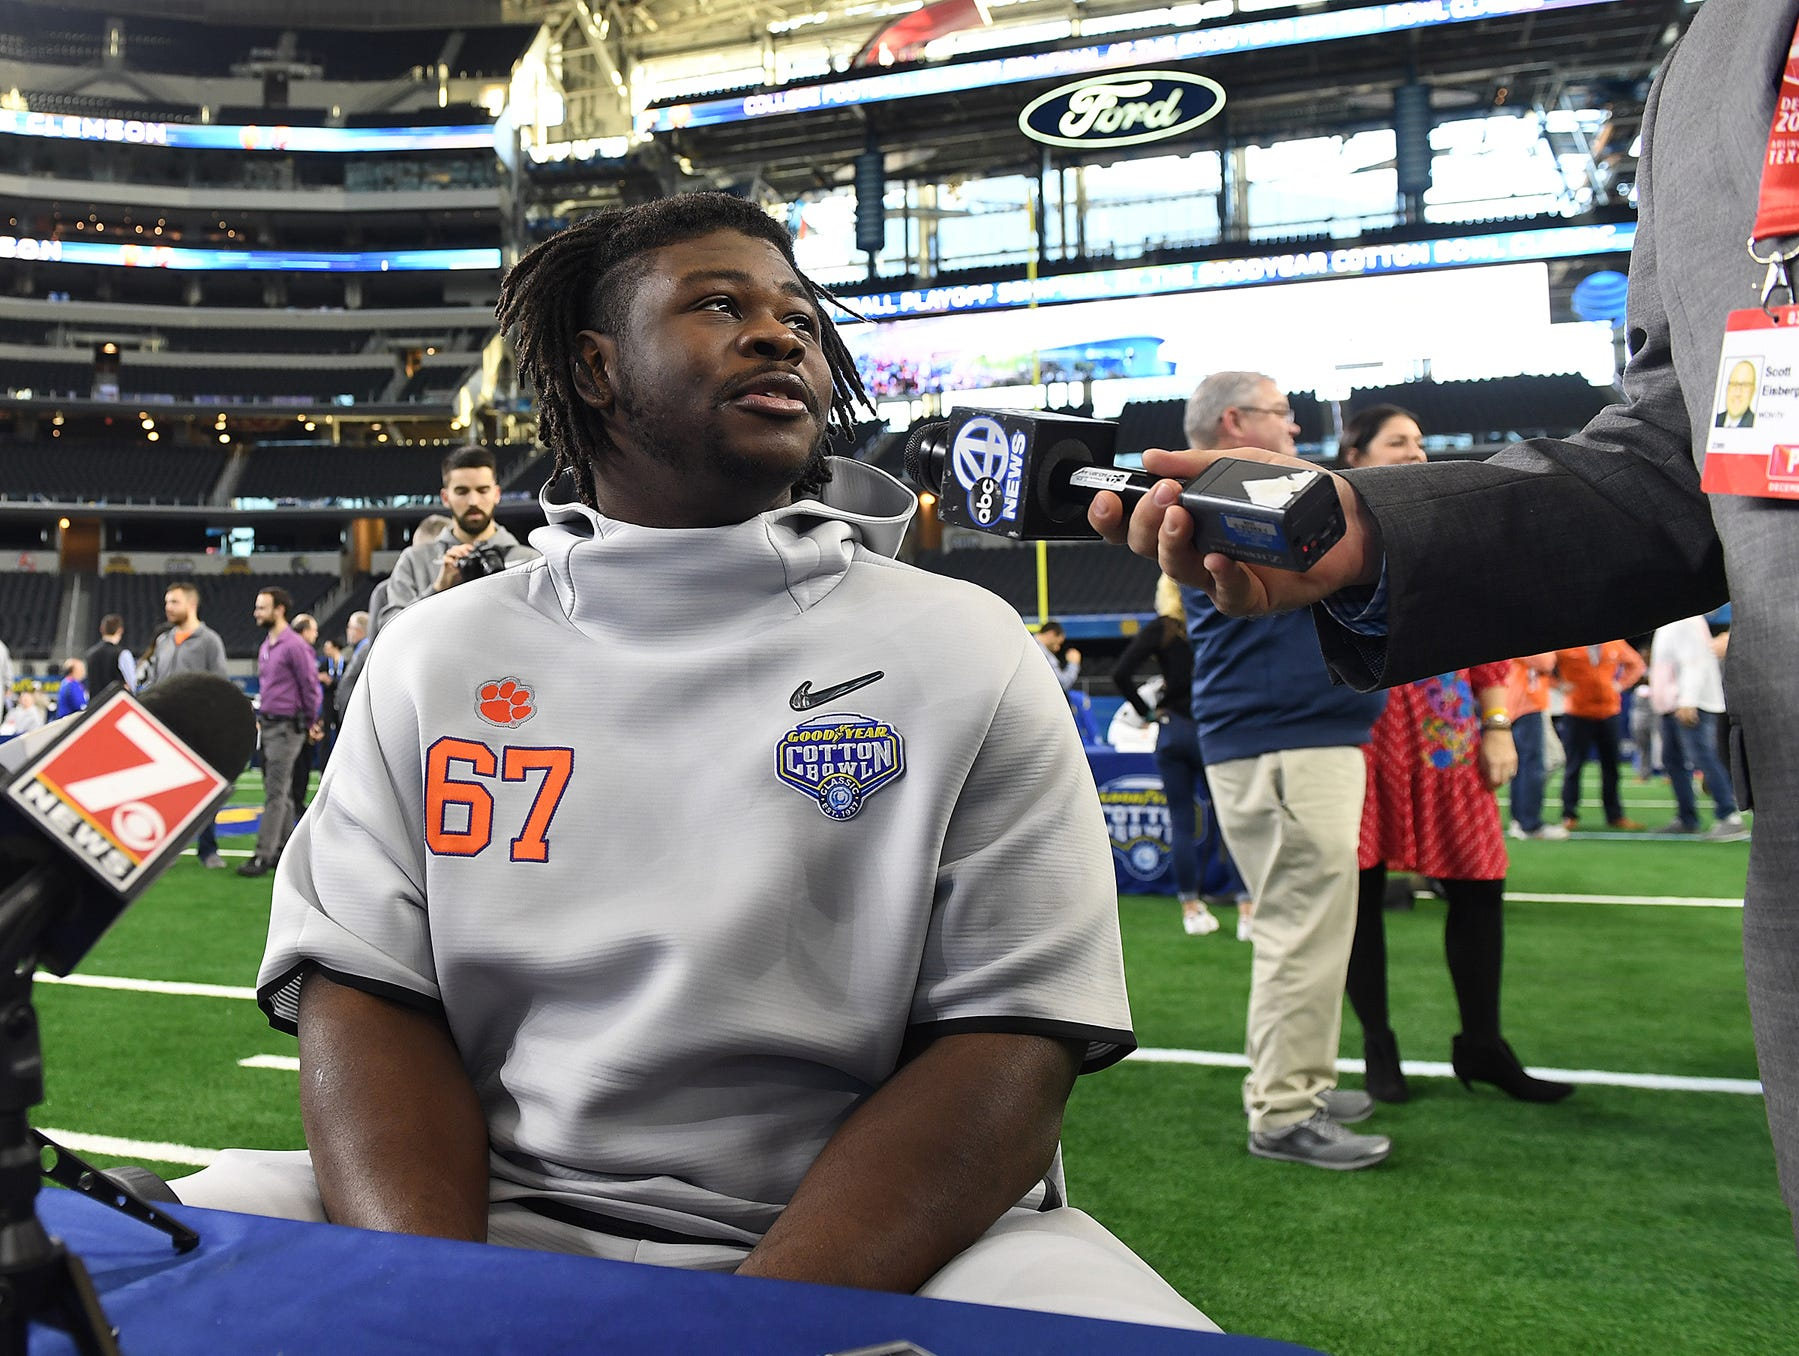 Clemson defensive lineman Albert Huggins answers questions during the Tigers Cotton Bowl media day at AT&T Stadium in Arlington, TX Thursday, December 27, 2018.